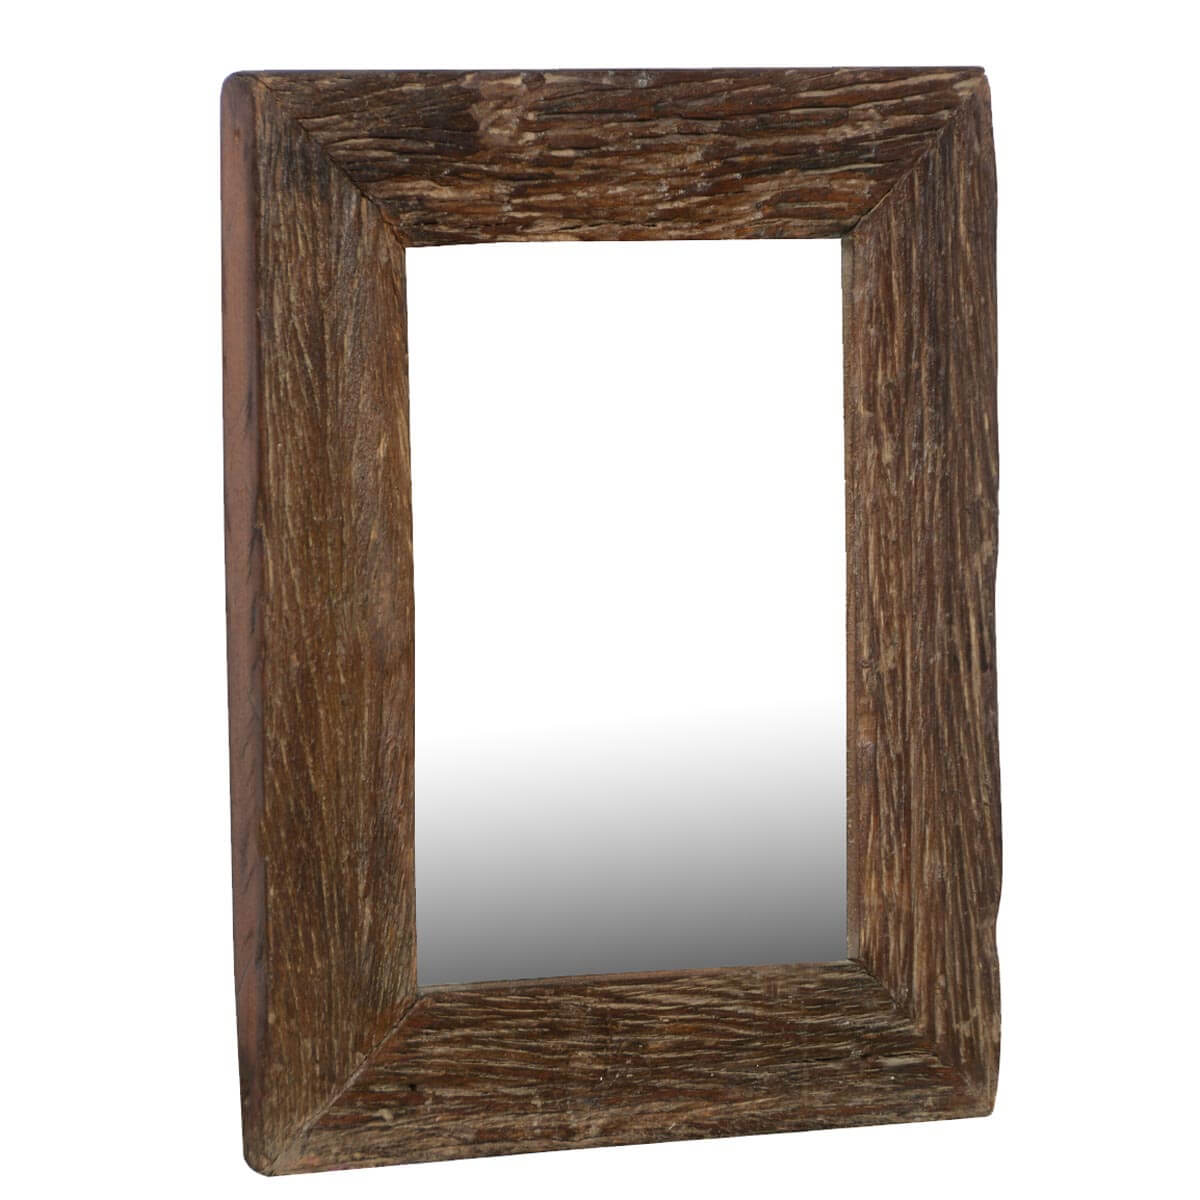 Appalachian rustic reclaimed wood 23 5 wall mirror frame for Mirror frame